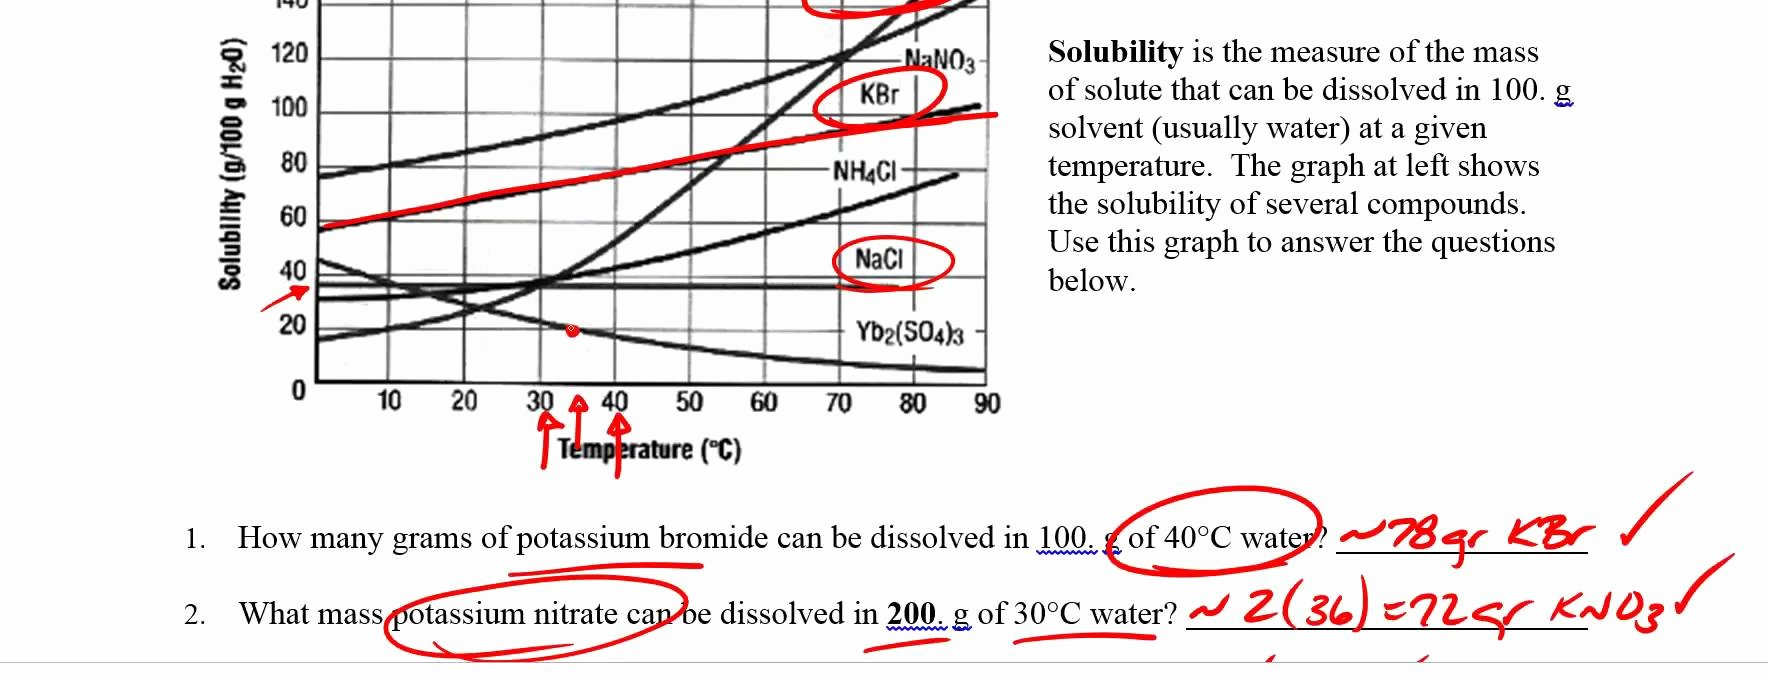 Solubility Graph Worksheet Answers Best Of solubility Graph Worksheet Answers the Best Worksheets